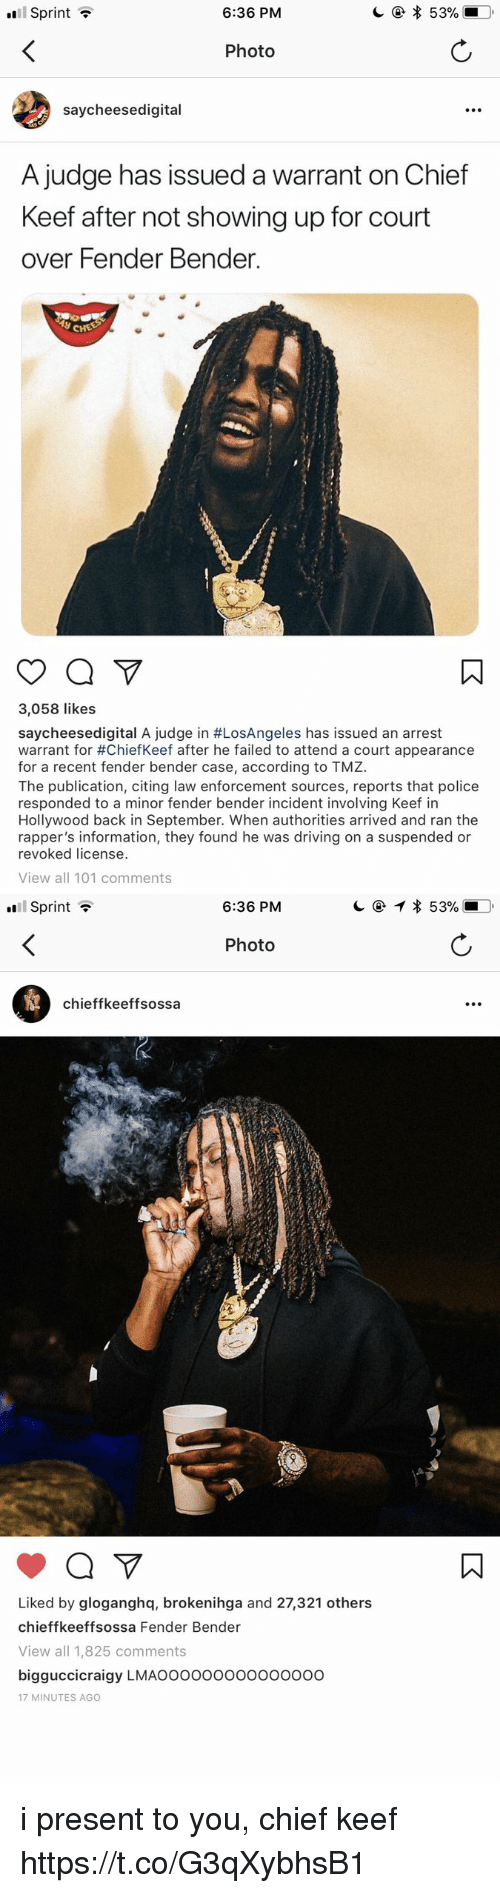 Blackpeopletwitter, Chief Keef, and Driving: Sprint ?  6:36 PM  Photo  saycheesedigital  A judge has issued a warrant on Chief  Keef after not showing up for court  over Fender Bender.  3,058 likes  saycheesedígital A judge in #LosAngeles has issued an arrest  warrant for #ChiefKeef after he failed to attend a court appearance  for a recent fender bender case, according to TMZ.  The publication, citing law enforcement sources, reports that police  responded to a minor fender bender incident involving Keef in  Hollywood back in September. When authorities arrived and ran the  rapper's information, they found he was driving on a suspended or  revoked license.  View all 101 comments   Sprint ?  6:36 PM  Photo  chieffkeeffsossa  Liked by gloganghq, brokenihga and 27,321 others  chieffkeeffsossa Fender Bender  View all 1,825 comments  bigguccicraigy LMAOooooooo000oo0o  17 MINUTES AGO i present to you, chief keef https://t.co/G3qXybhsB1